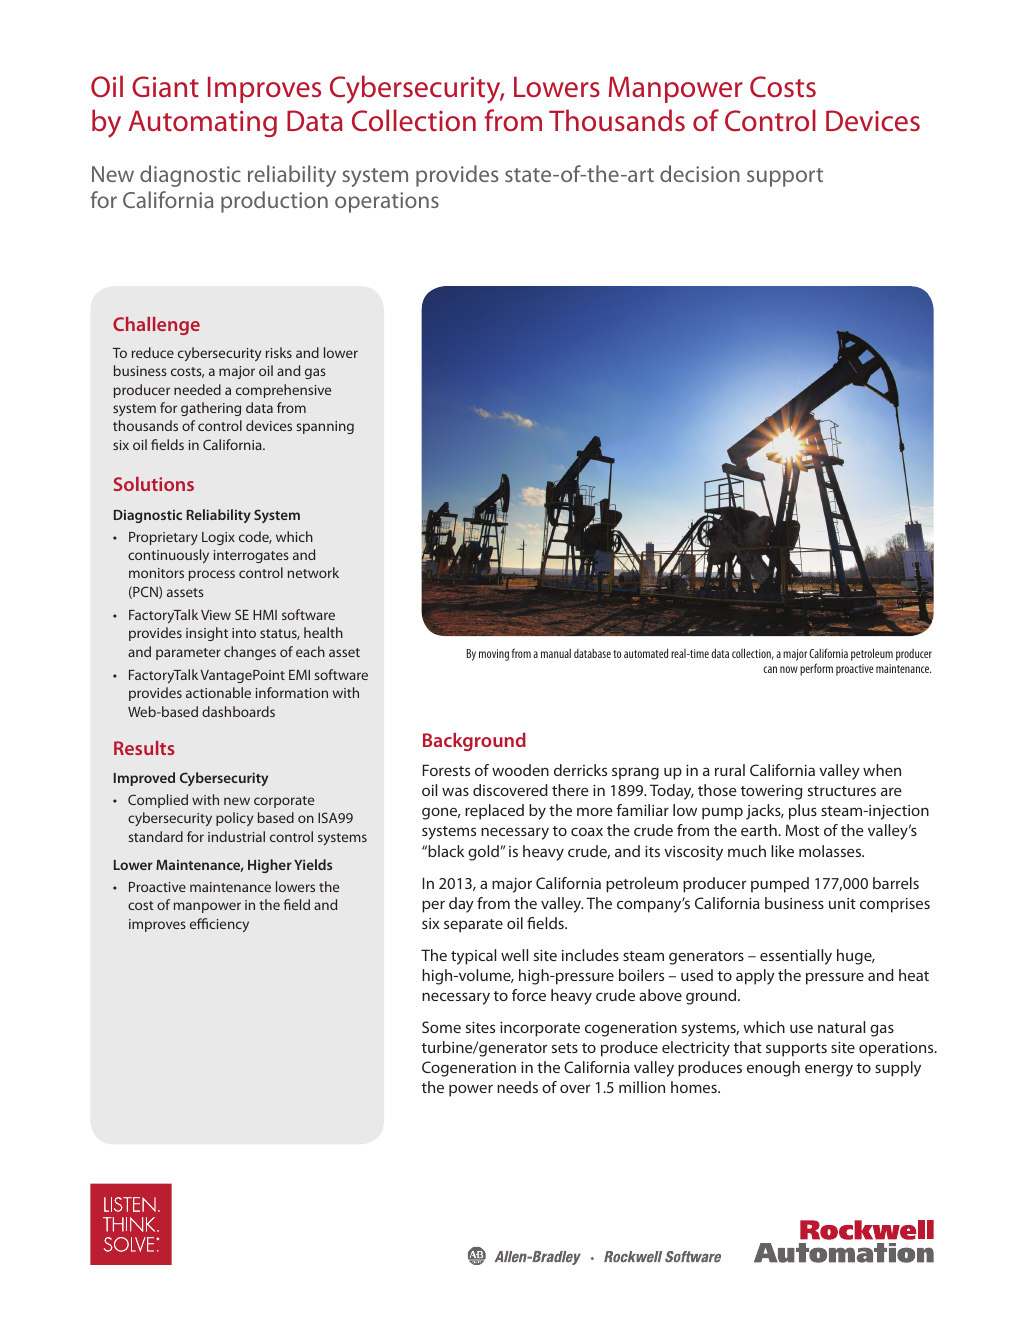 Oil Giant Improves Cybersecurity and Lower Manpower Costs